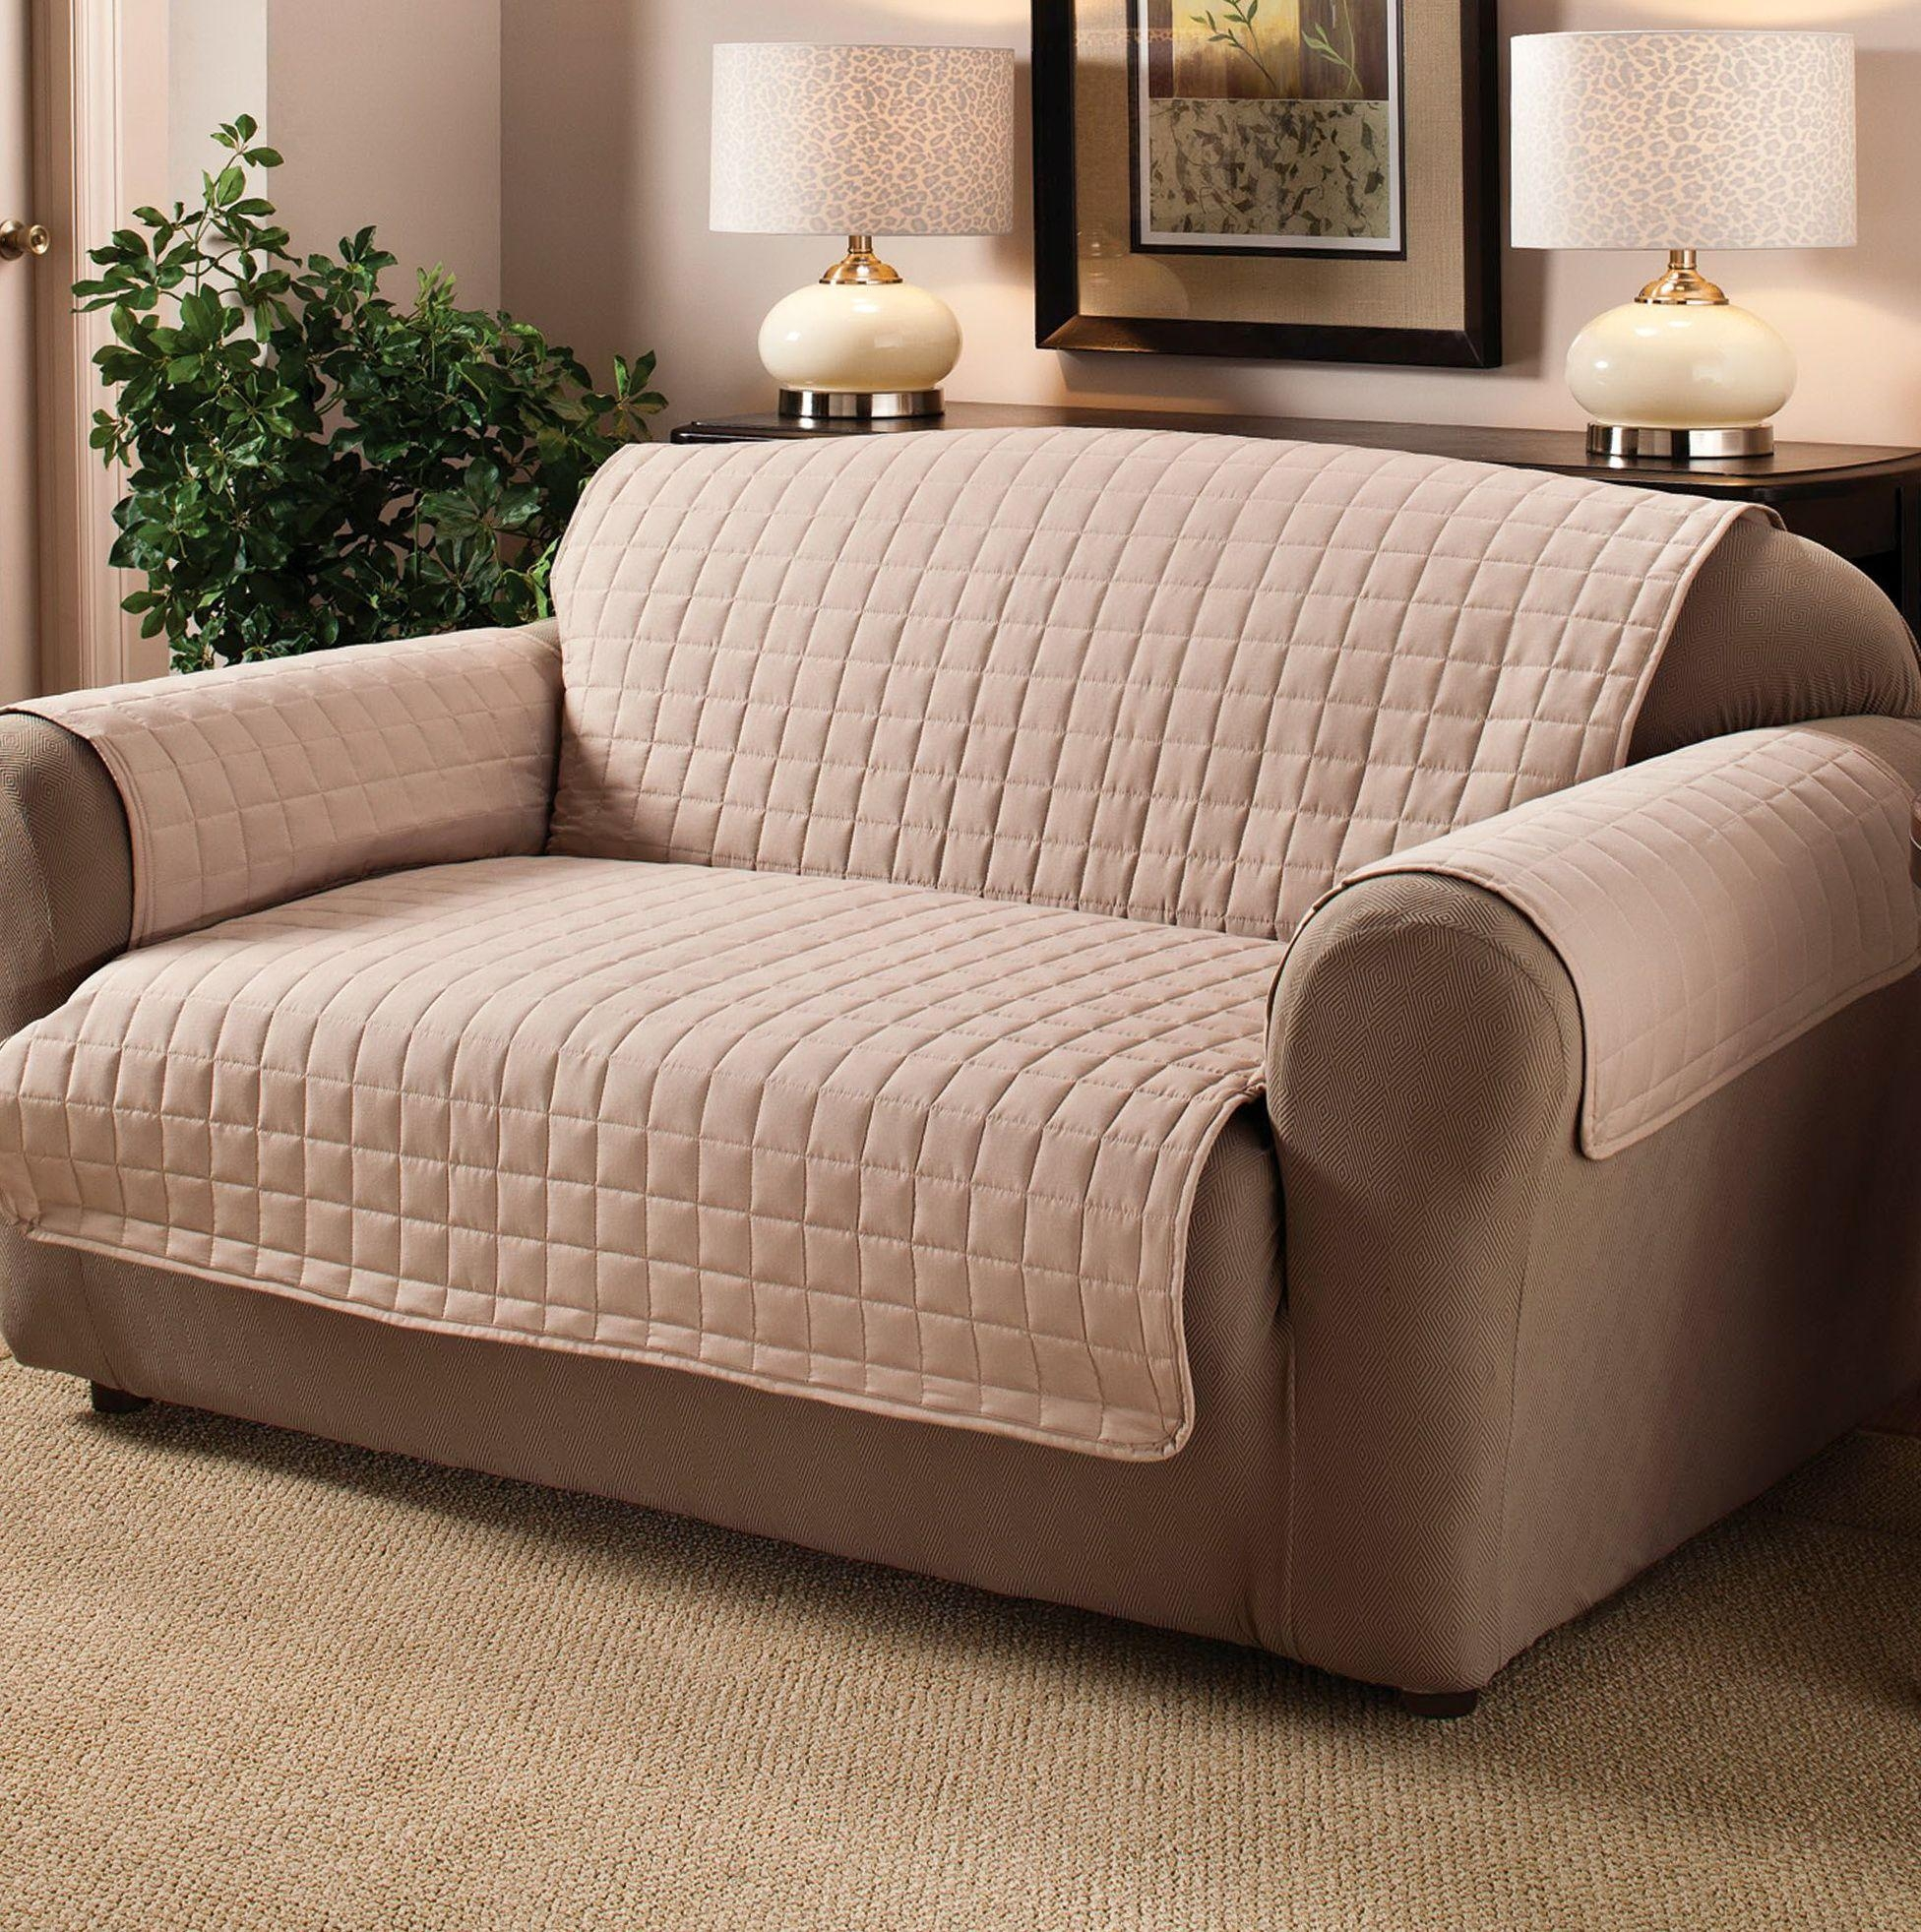 Furniture: Couch Covers For Pets Walmart | Couch Covers Walmart Within Slipcover For Recliner Sofas (View 18 of 20)